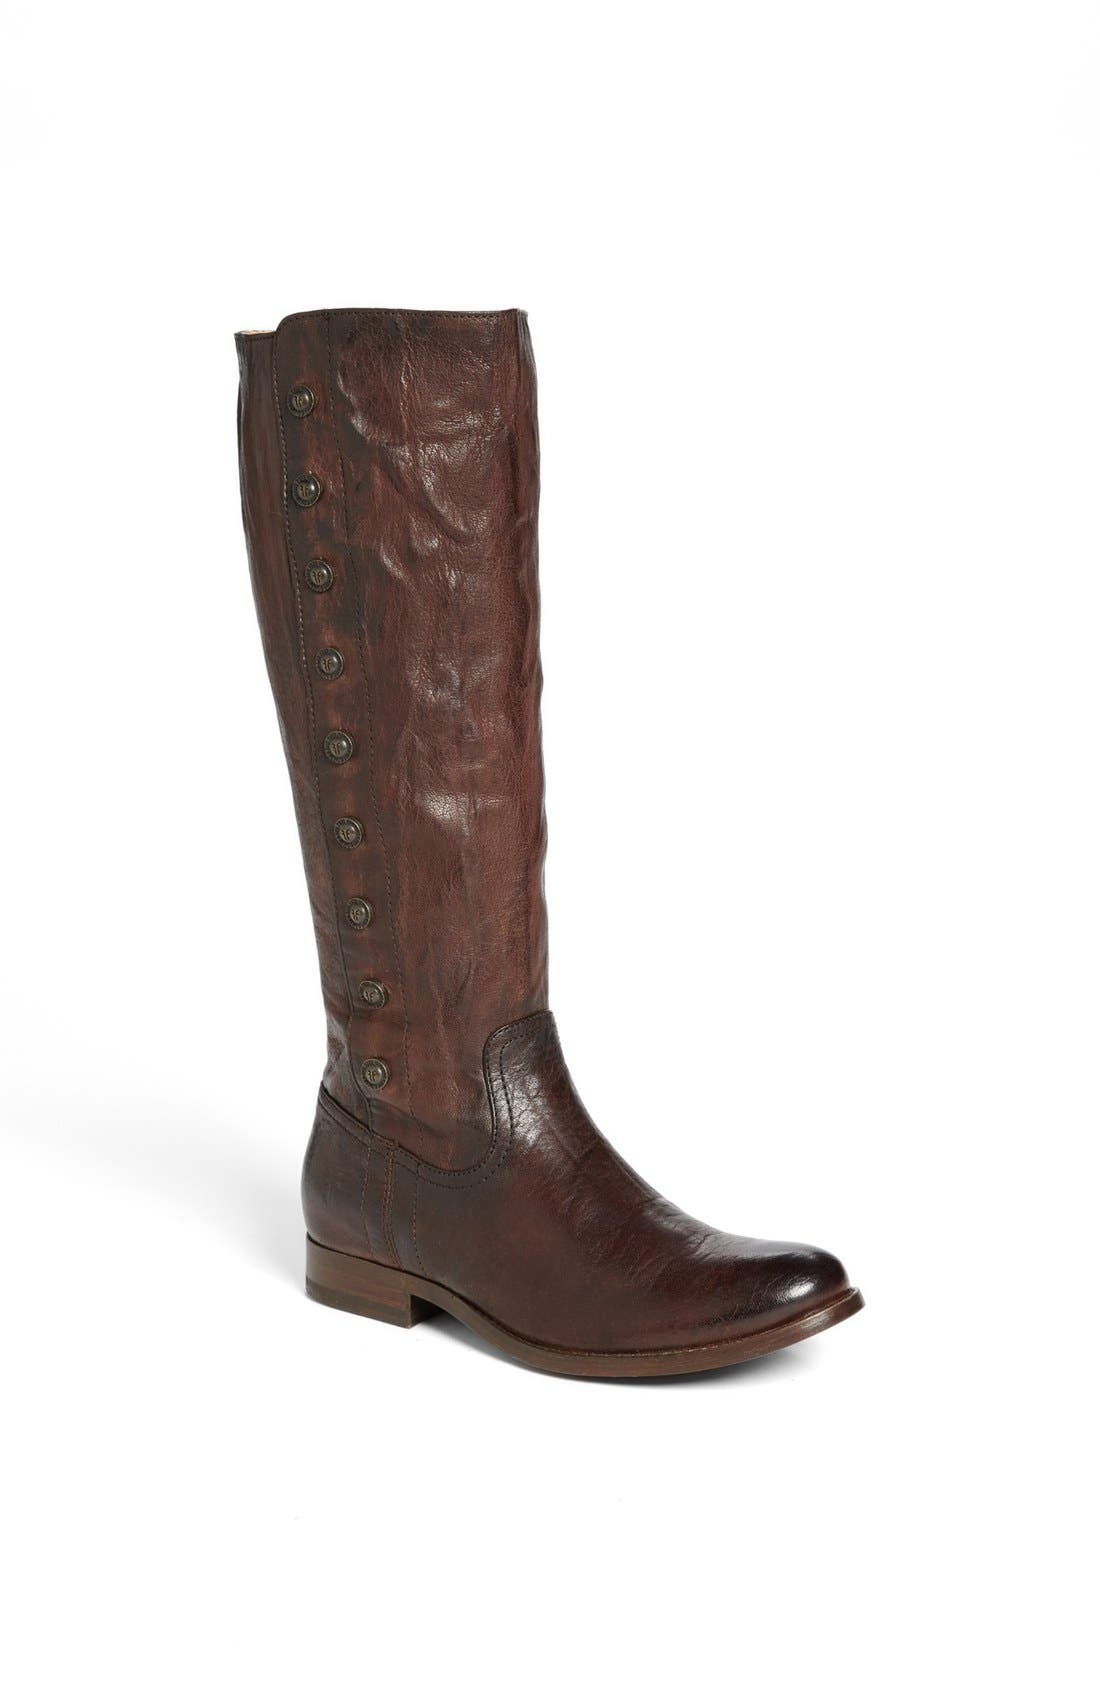 Alternate Image 1 Selected - Frye 'Melissa Military' Tall Boot